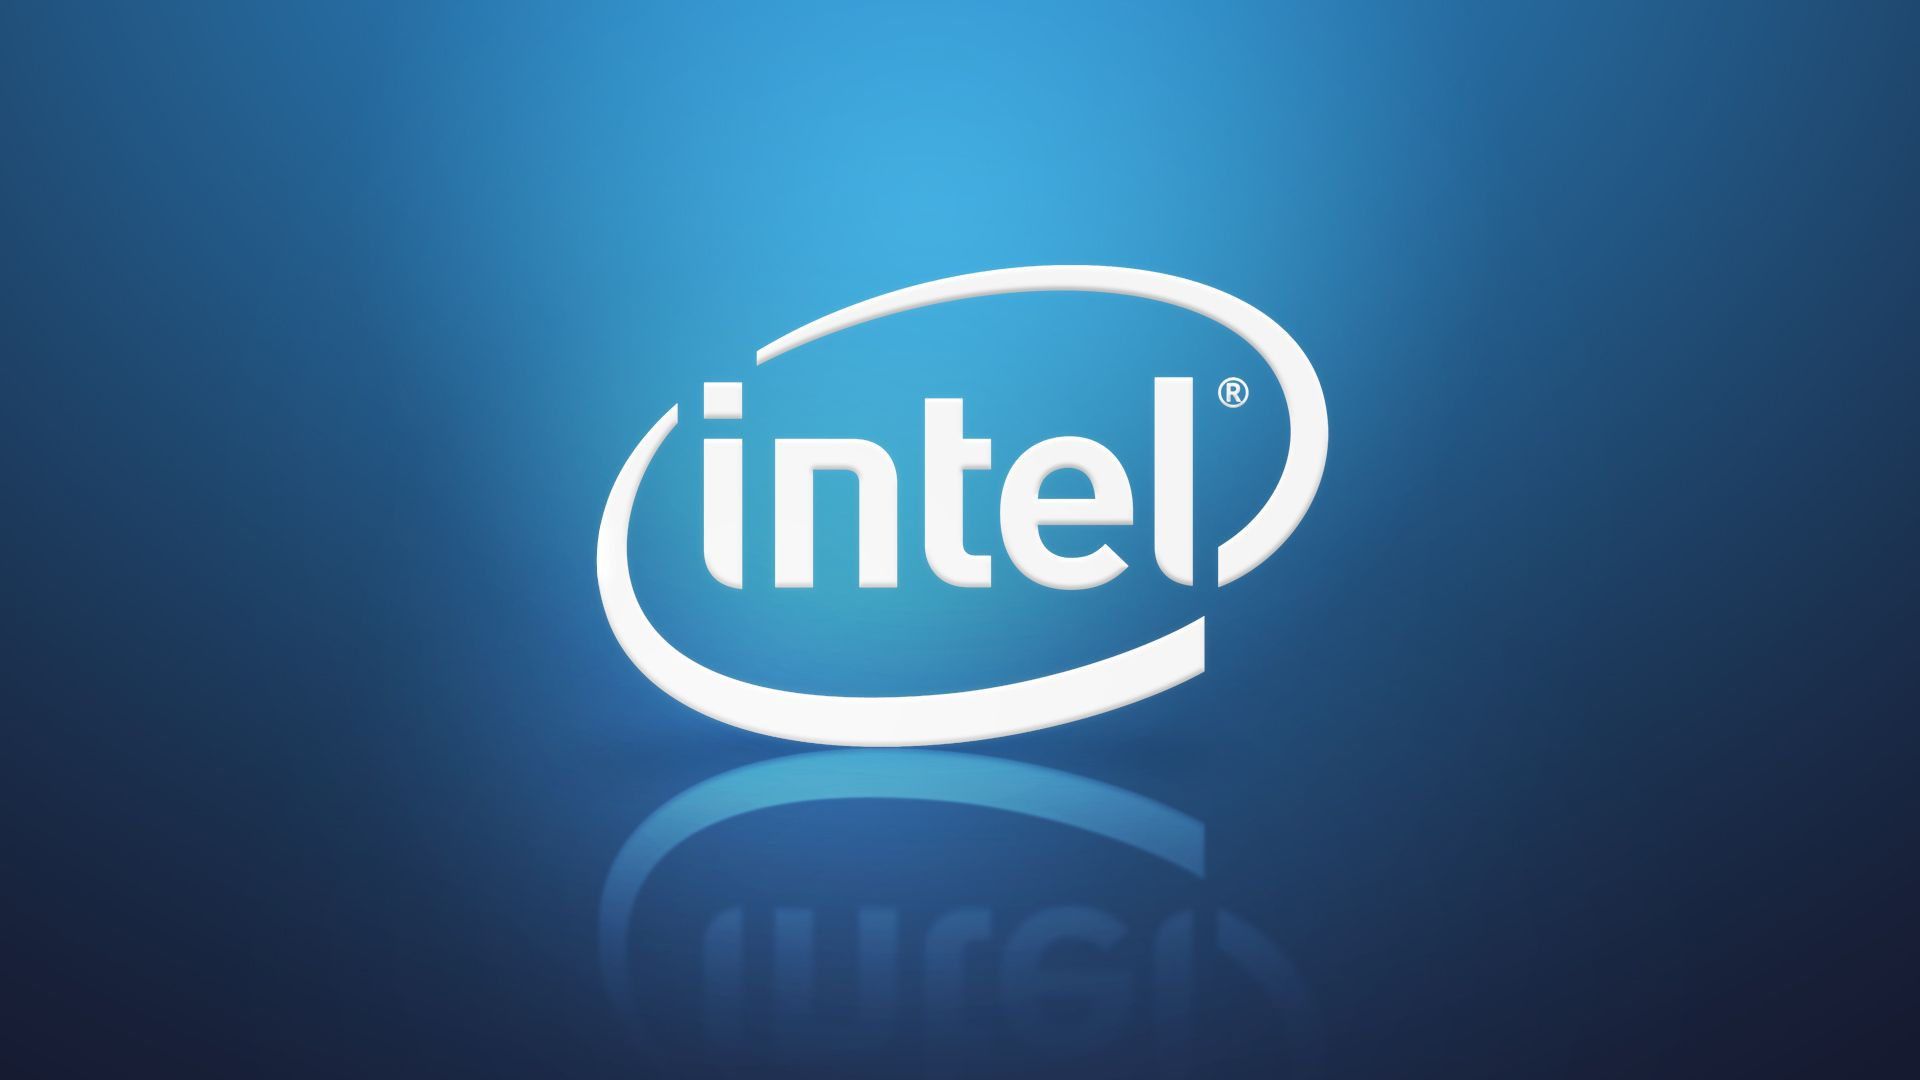 Intel Wallpapers